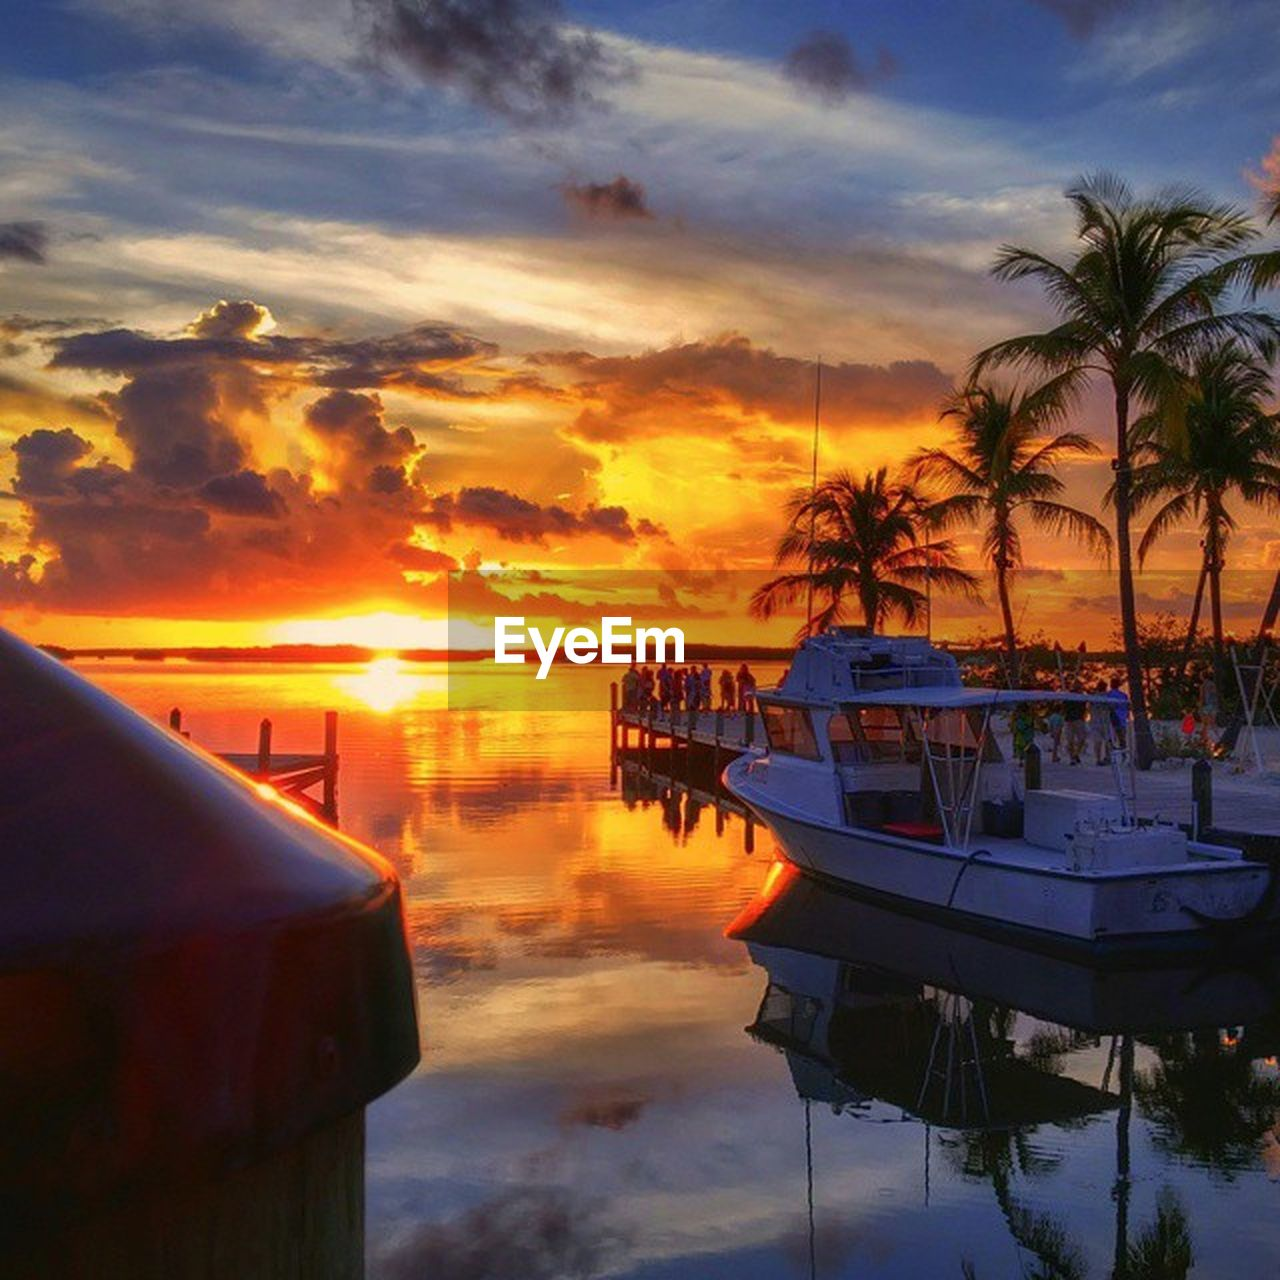 sunset, reflection, nautical vessel, water, sea, sky, cloud - sky, transportation, scenics, nature, tranquility, palm tree, moored, tranquil scene, no people, travel destinations, outdoors, beauty in nature, tree, vacations, beach, day